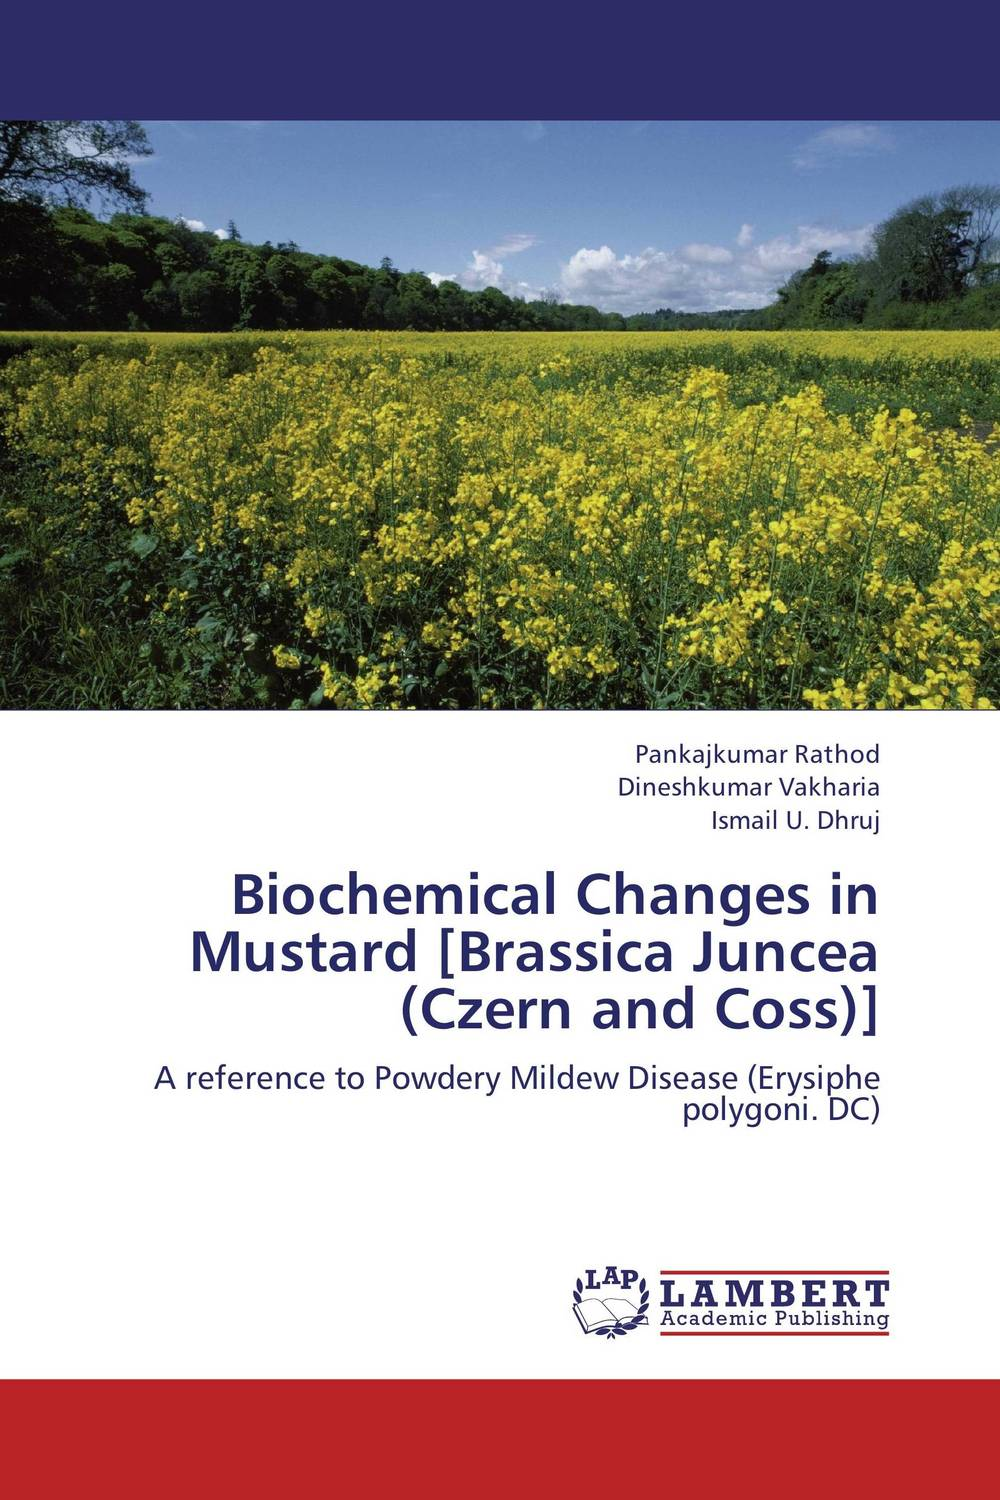 Biochemical Changes in Mustard [Brassica Juncea (Czern and Coss)] subodh kumar and rakesh kumar response of organic nutrition and nitrogen on mustard brassica juncea